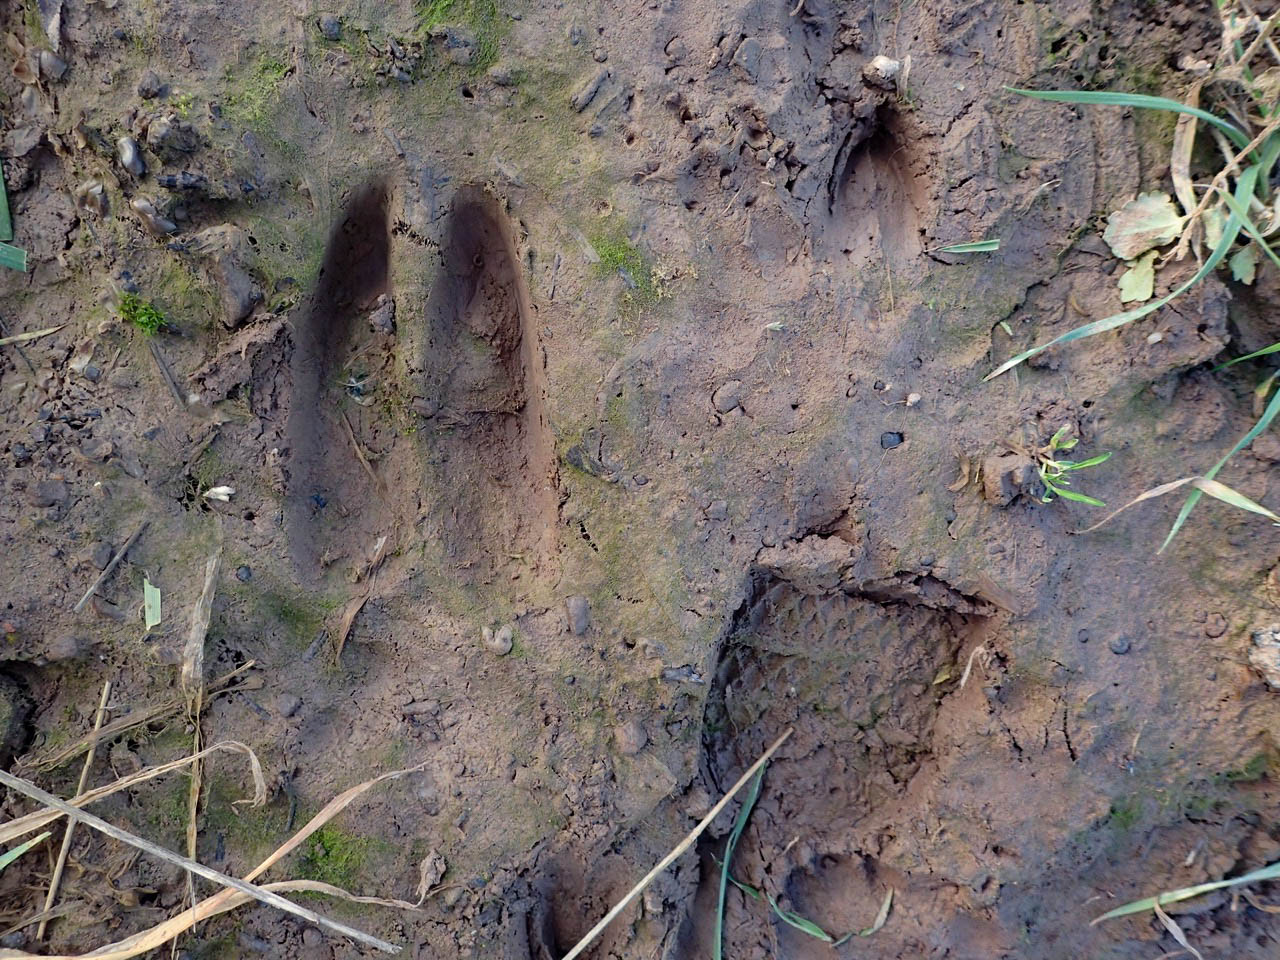 Deer prints in the mud - © Rosemary Winnall